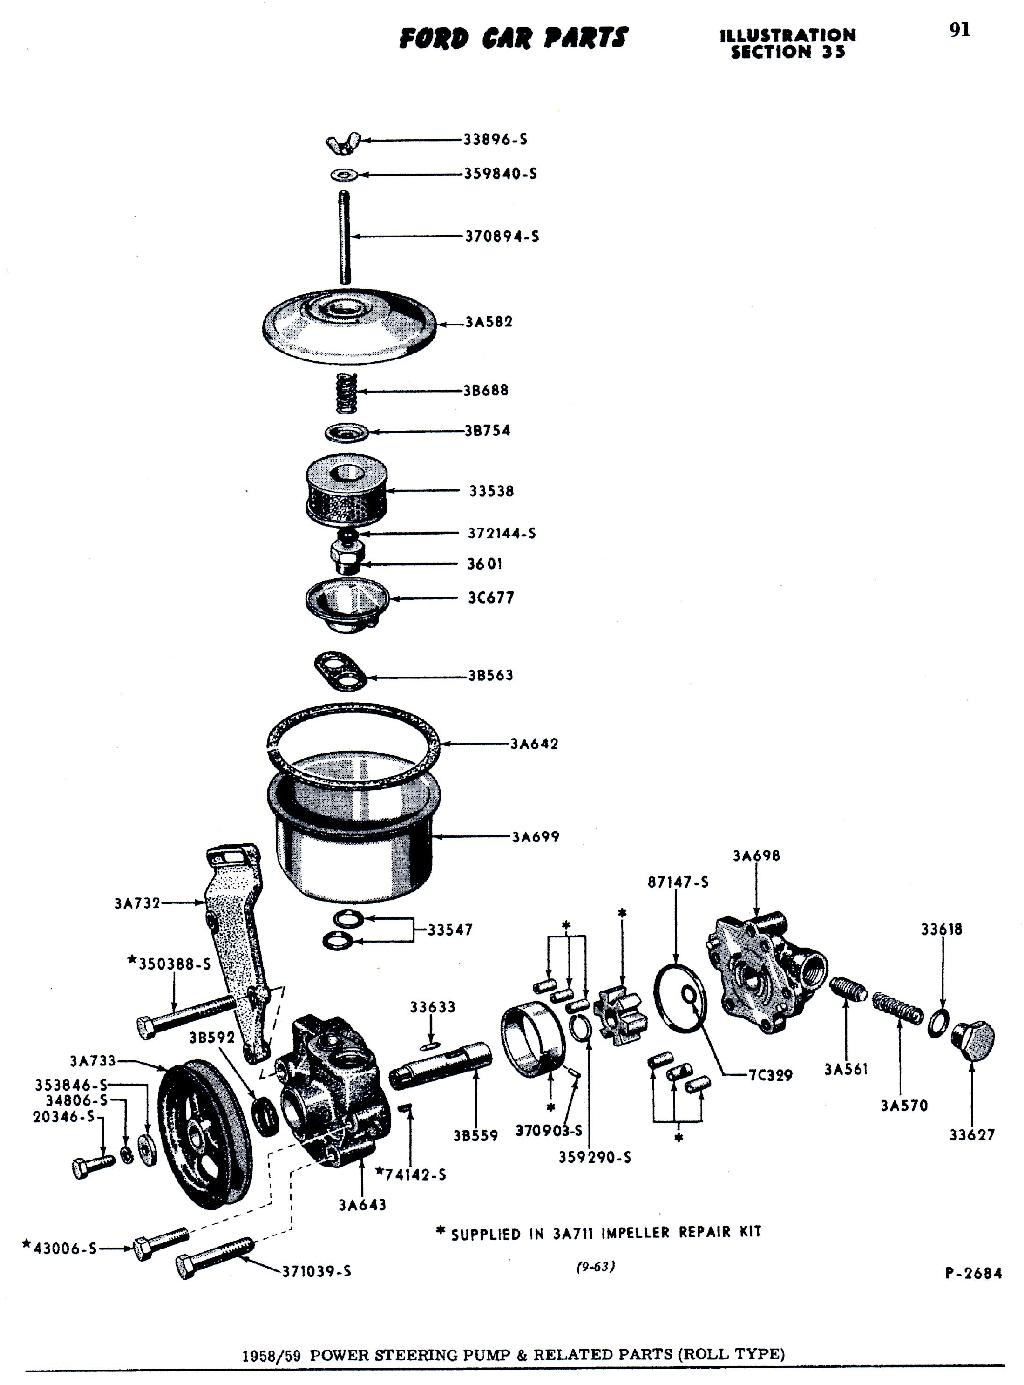 Painless Wiring Steering Column Help 21677 as well 65 Galaxie Wiring Diagram further 2003 Cadillac Cts Starter Wiring Diagram as well Diagrams furthermore Eaton Power Steering Pump Diagram Ford Tractor. on ford thunderbird wiring diagram